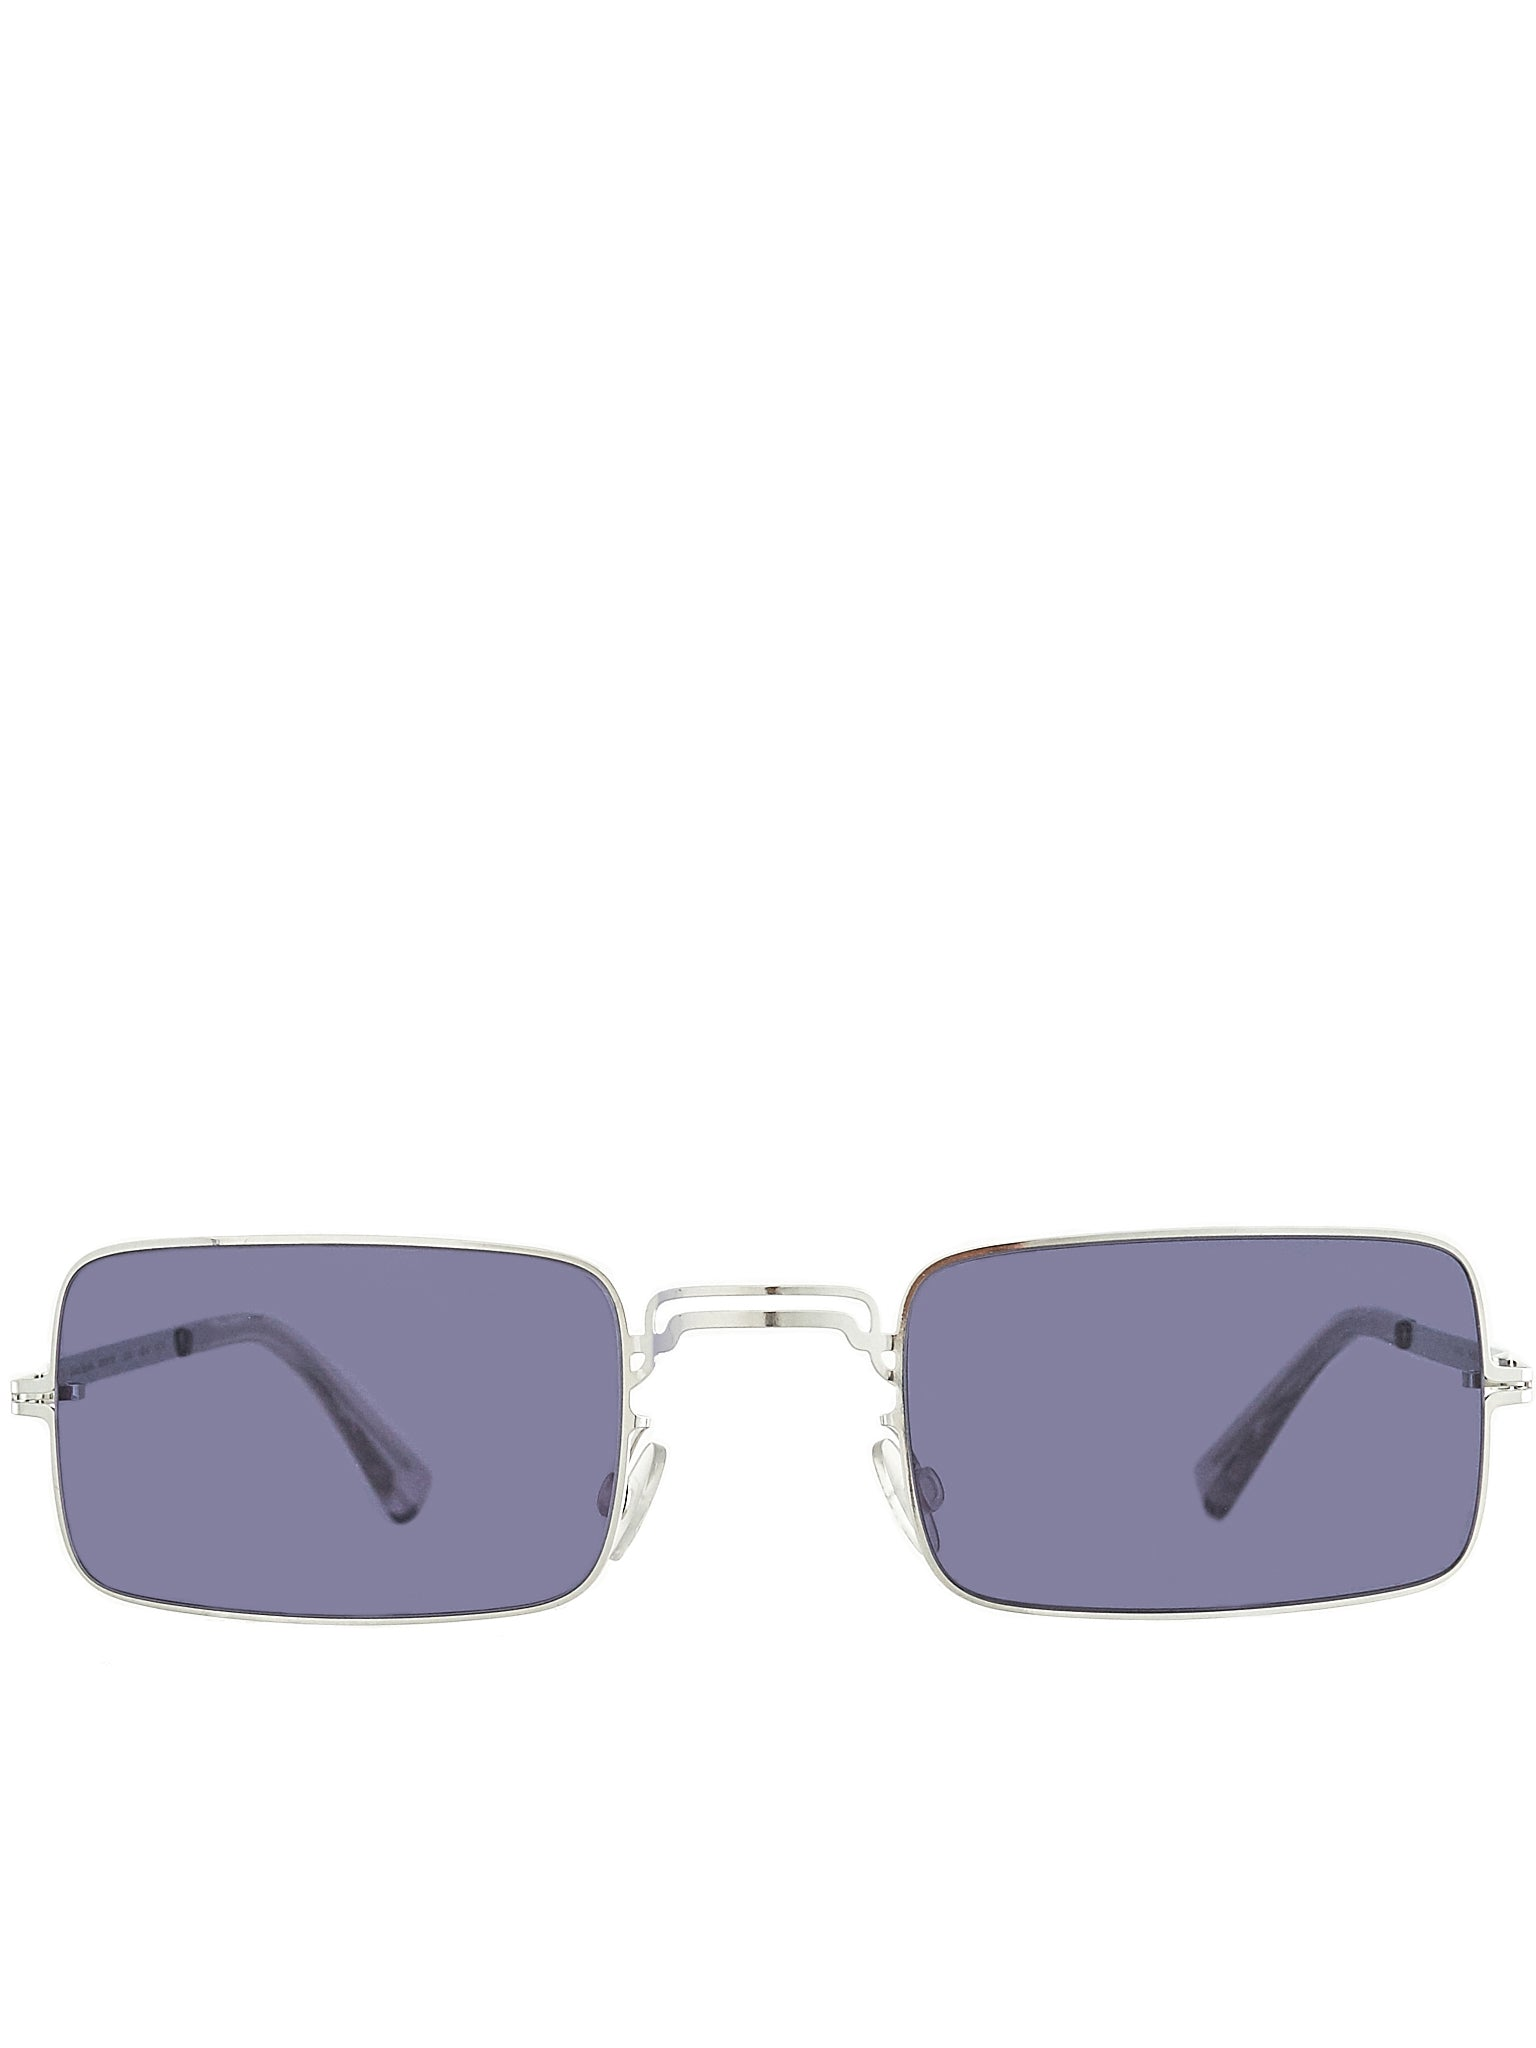 'MMCRAFT003' Square Frame Sunglasses (MMCRAFT003-SILVER-INDIGO)